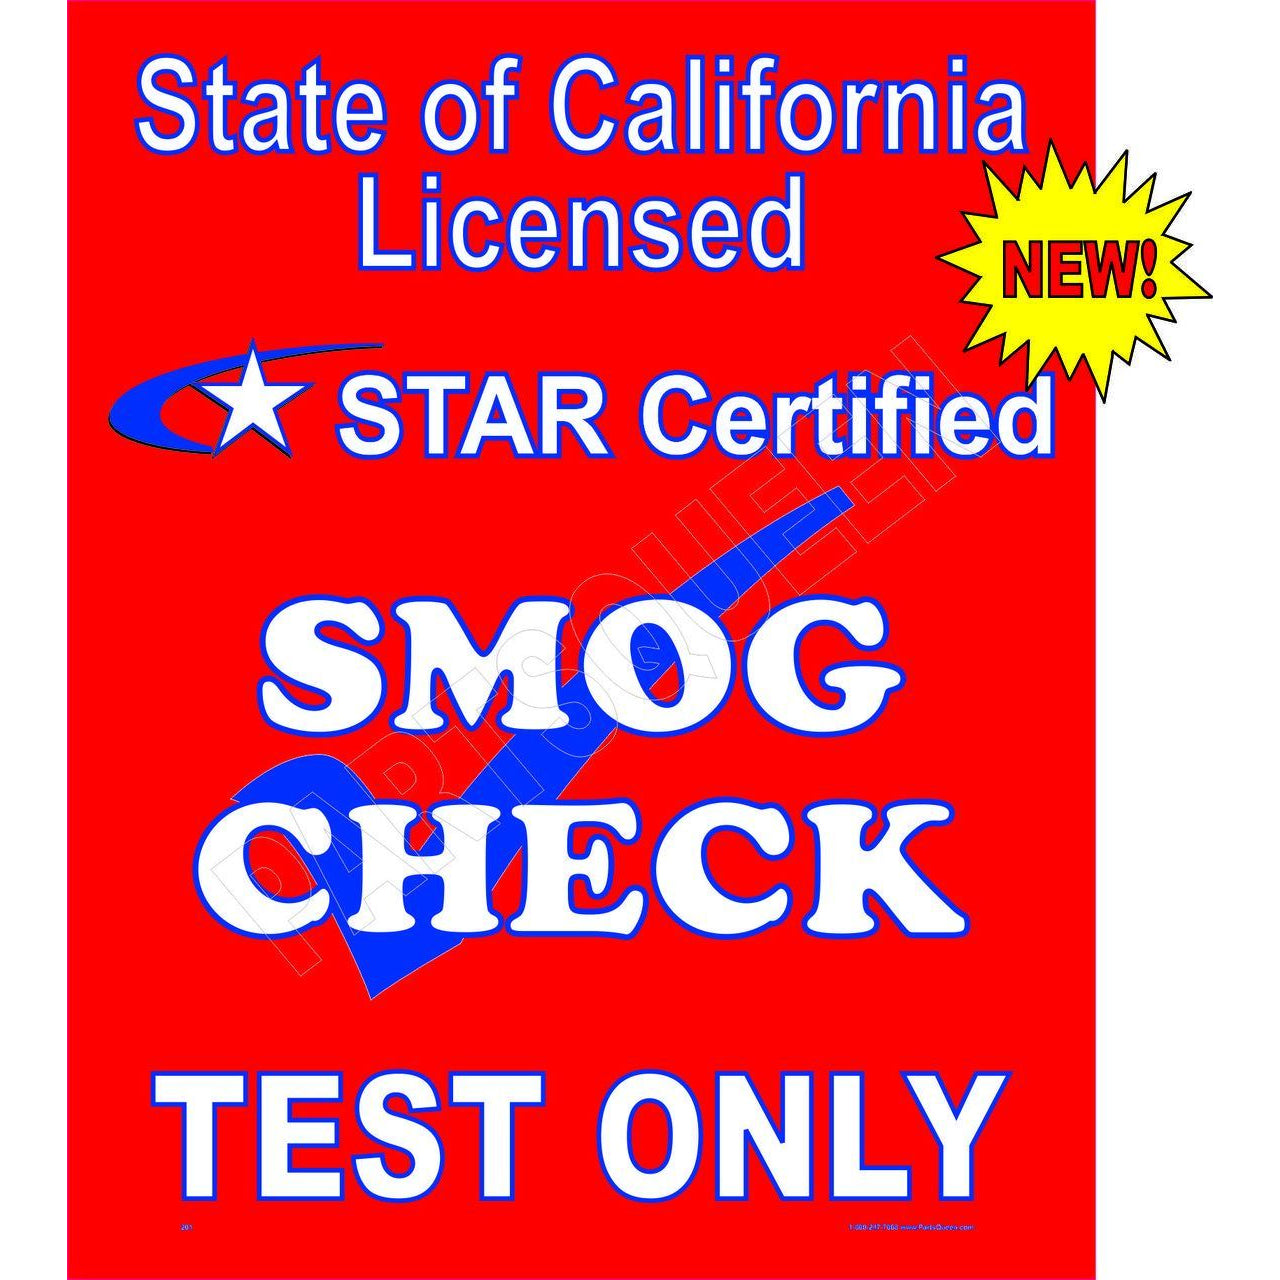 STAR CERTIFIED TEST ONLY SHIELD # DS-201